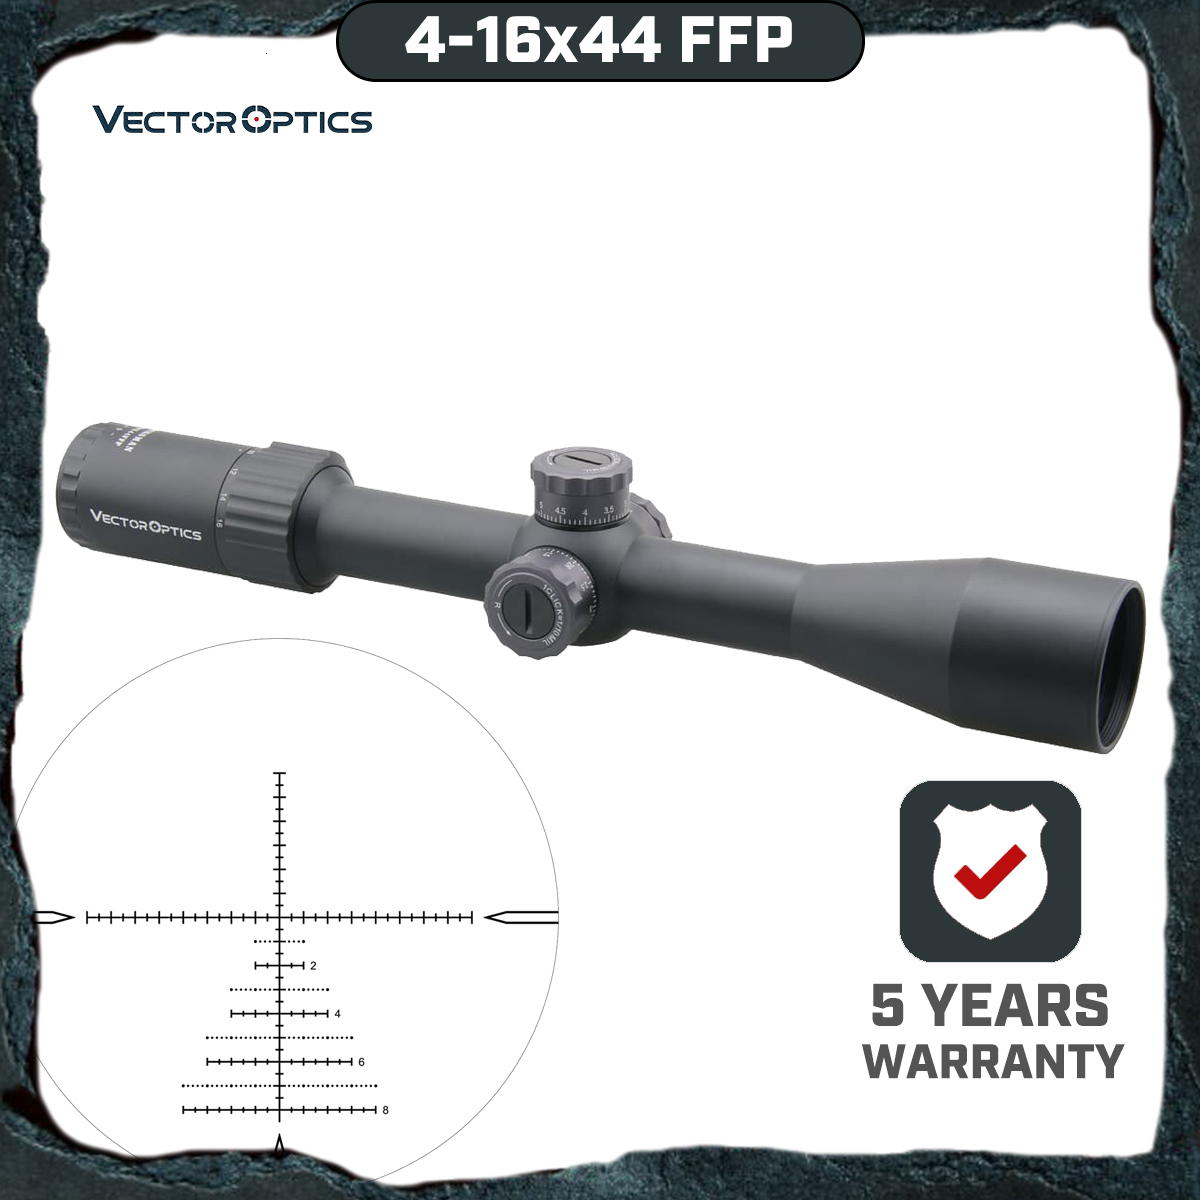 Vector Optics Marksman 4-16x44 FFP Tactical Rifle Scope 1/10 MIL First Focal Plane Sniper Hunting Riflescope Shock Proof .338